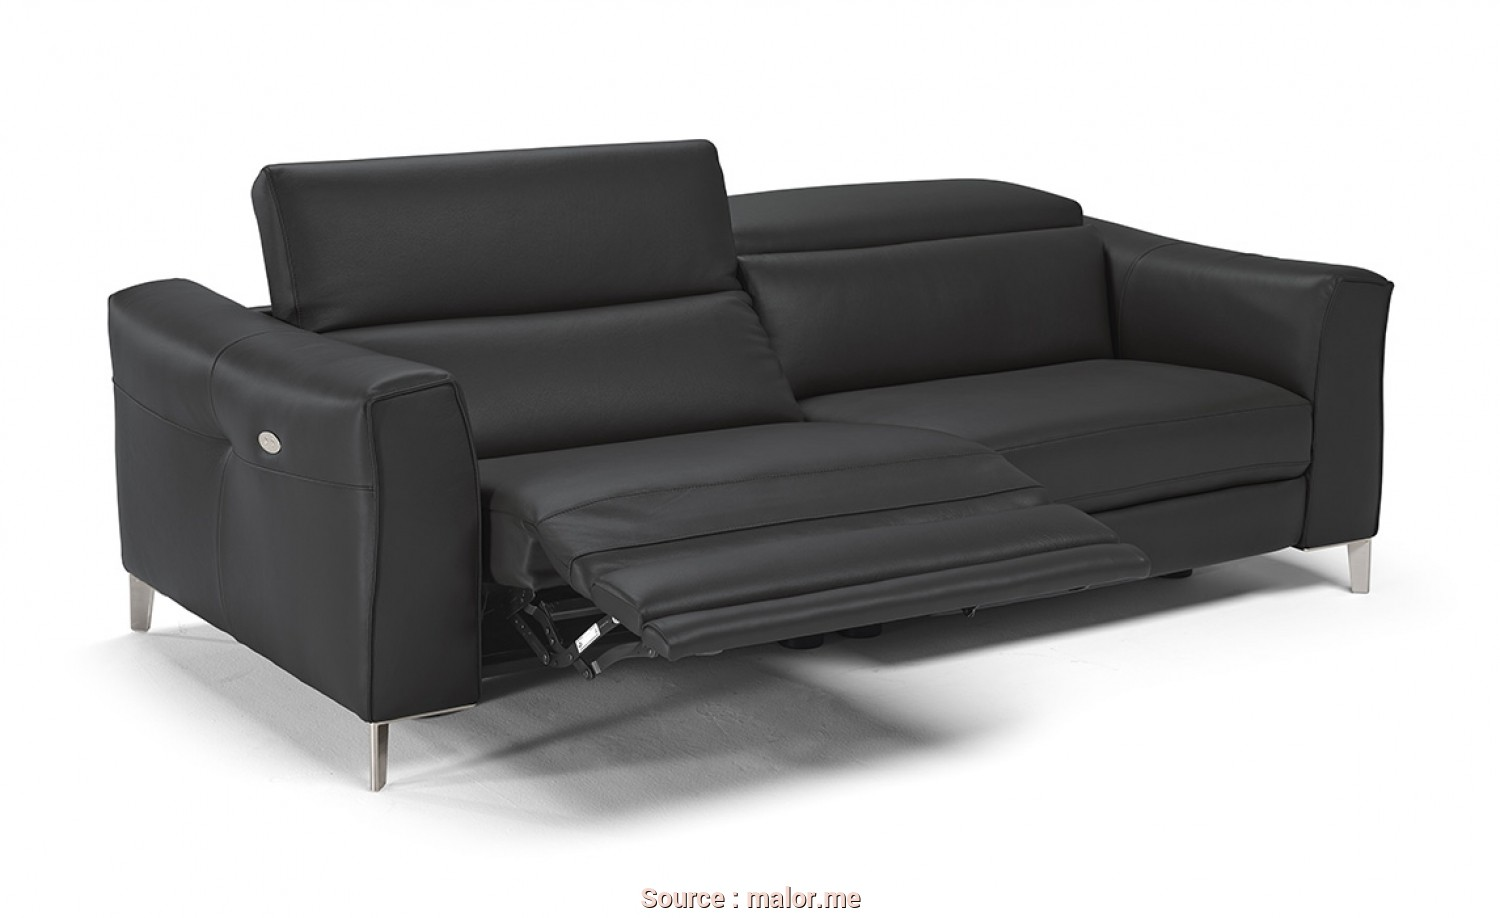 Superiore 5 natuzzi divano reclinabile jake vintage for Divano reclinabile